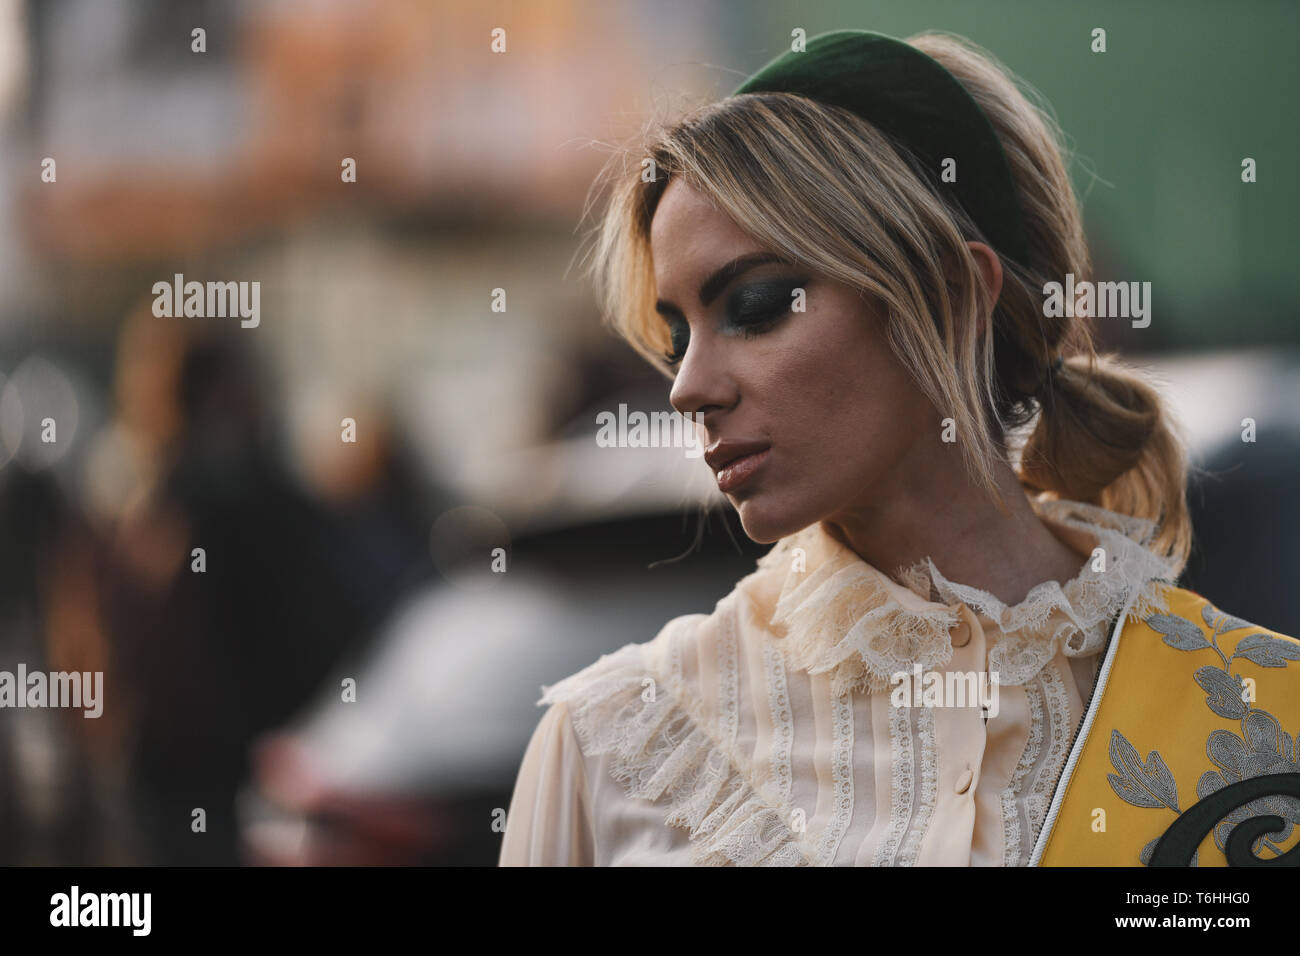 df96bc0b4 Milan, Italy - February 20, 2019: Street style outfits - models, bloggers